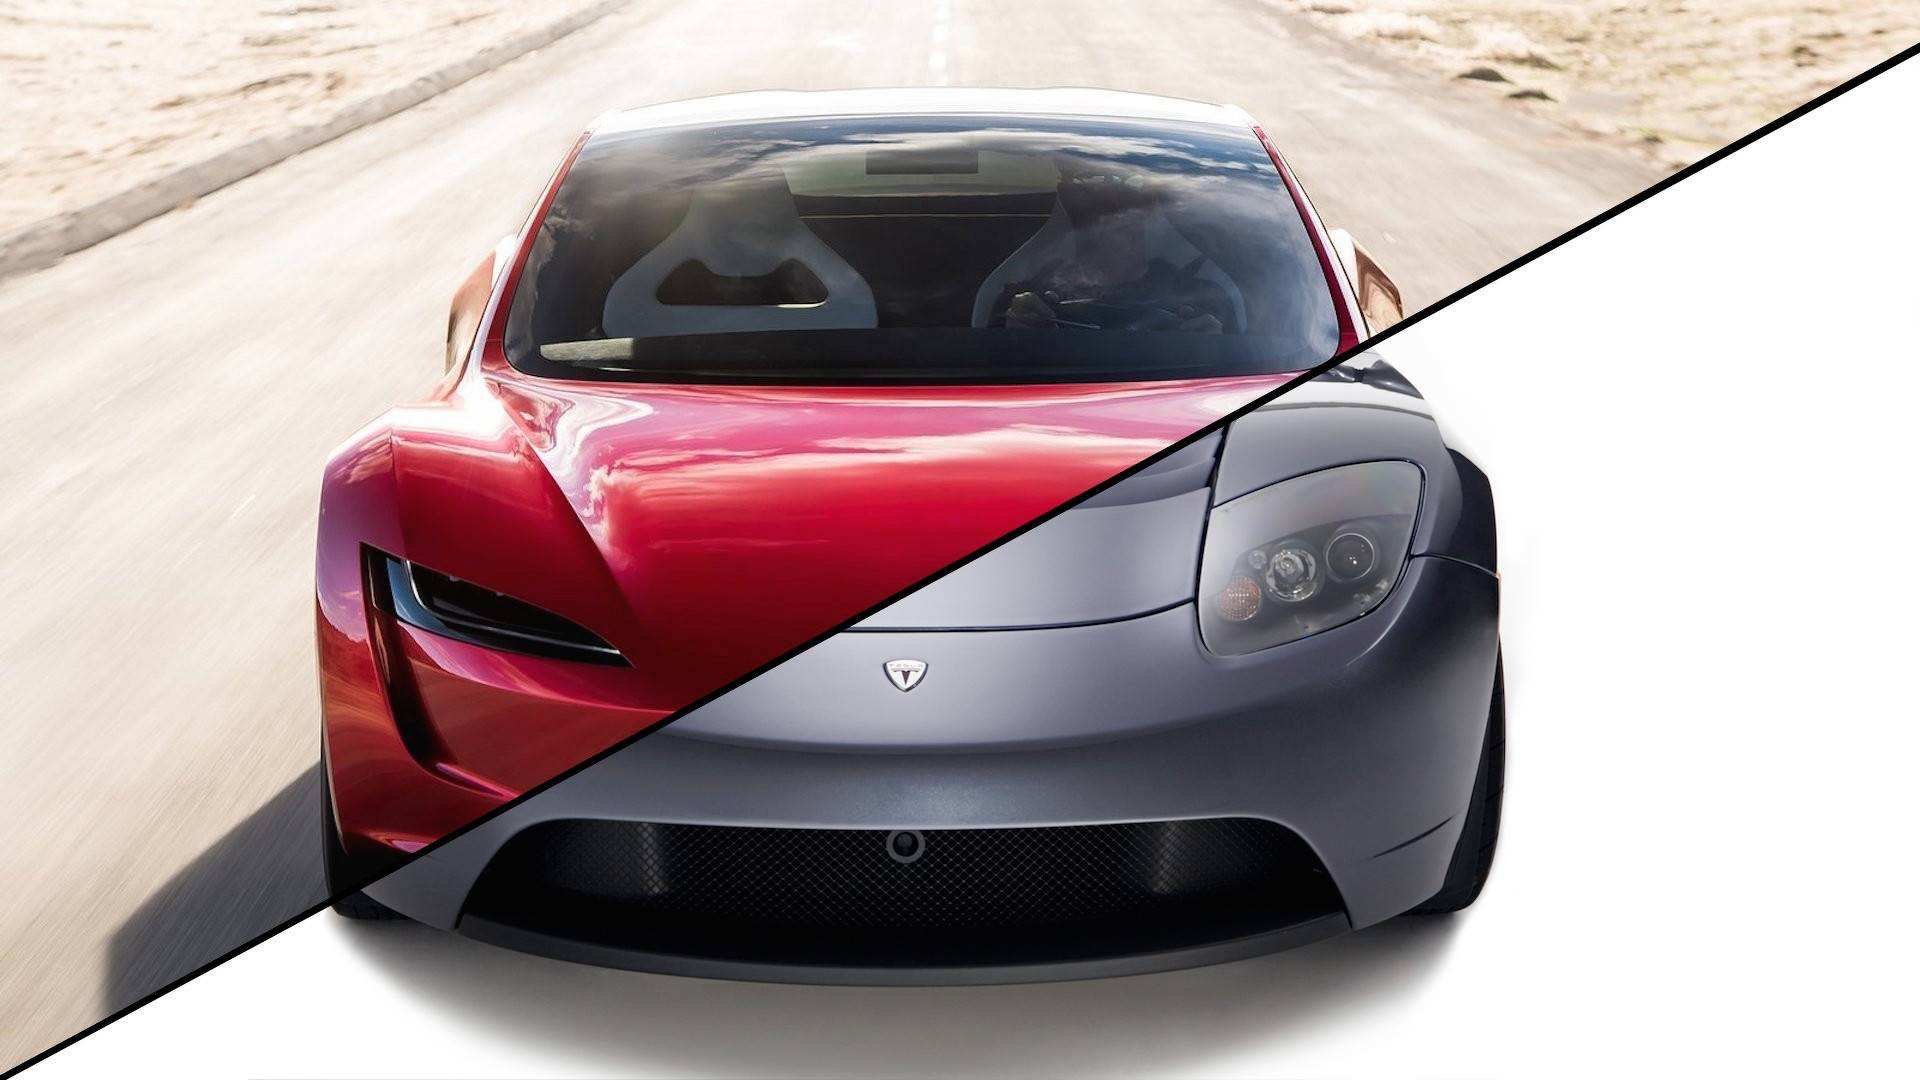 87 Concept of 2020 Tesla Roadster Charge Time Spy Shoot with 2020 Tesla Roadster Charge Time